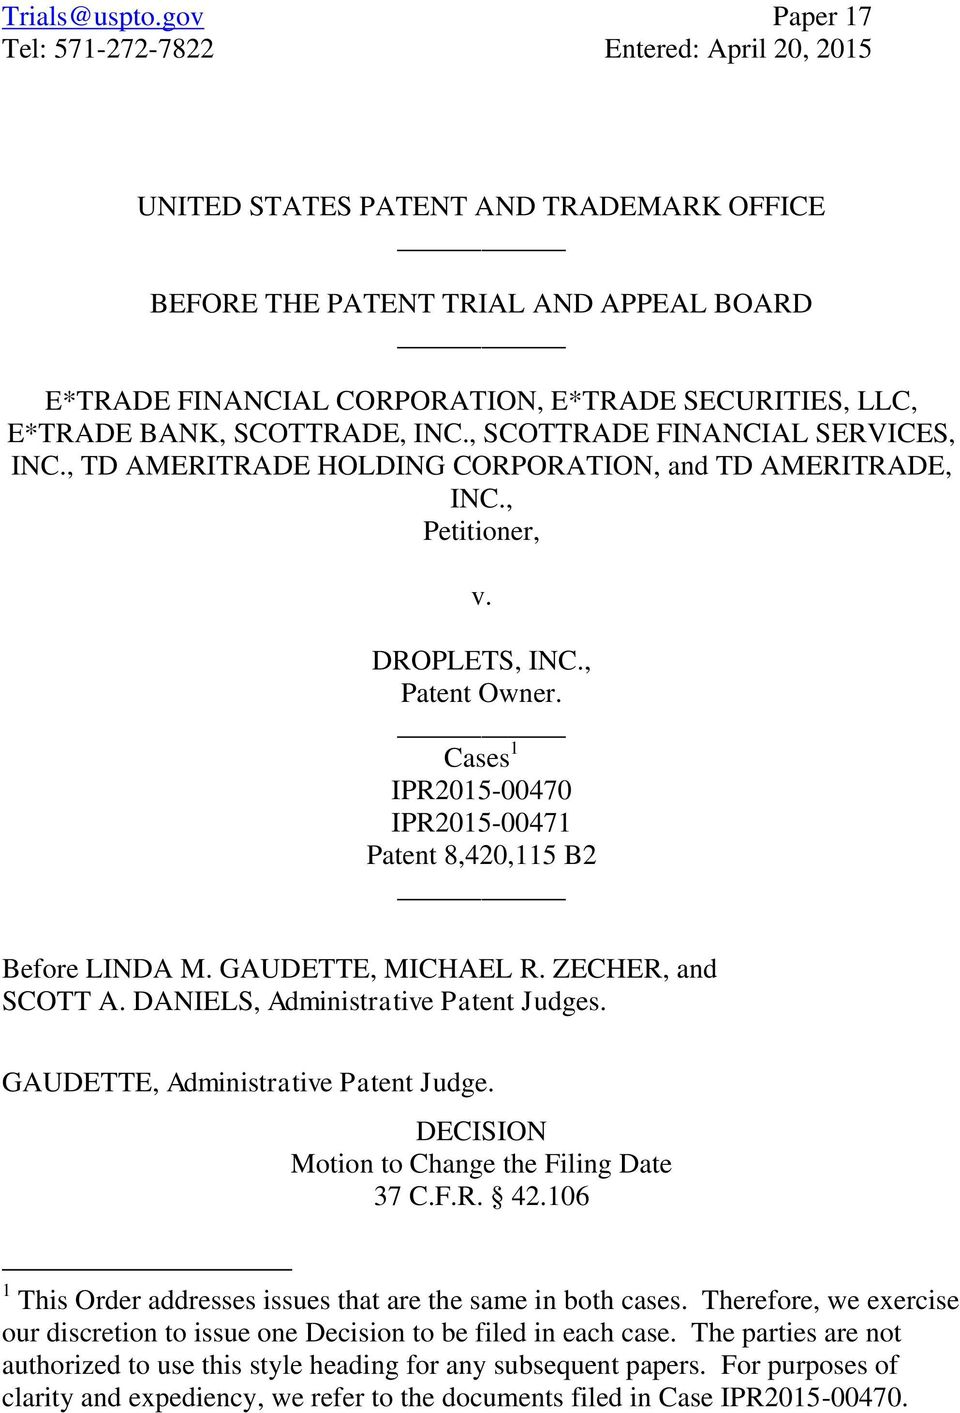 E*TRADE BANK, SCOTTRADE, INC., SCOTTRADE FINANCIAL SERVICES, INC., TD AMERITRADE HOLDING CORPORATION, and TD AMERITRADE, INC., Petitioner, v. DROPLETS, INC., Patent Owner.